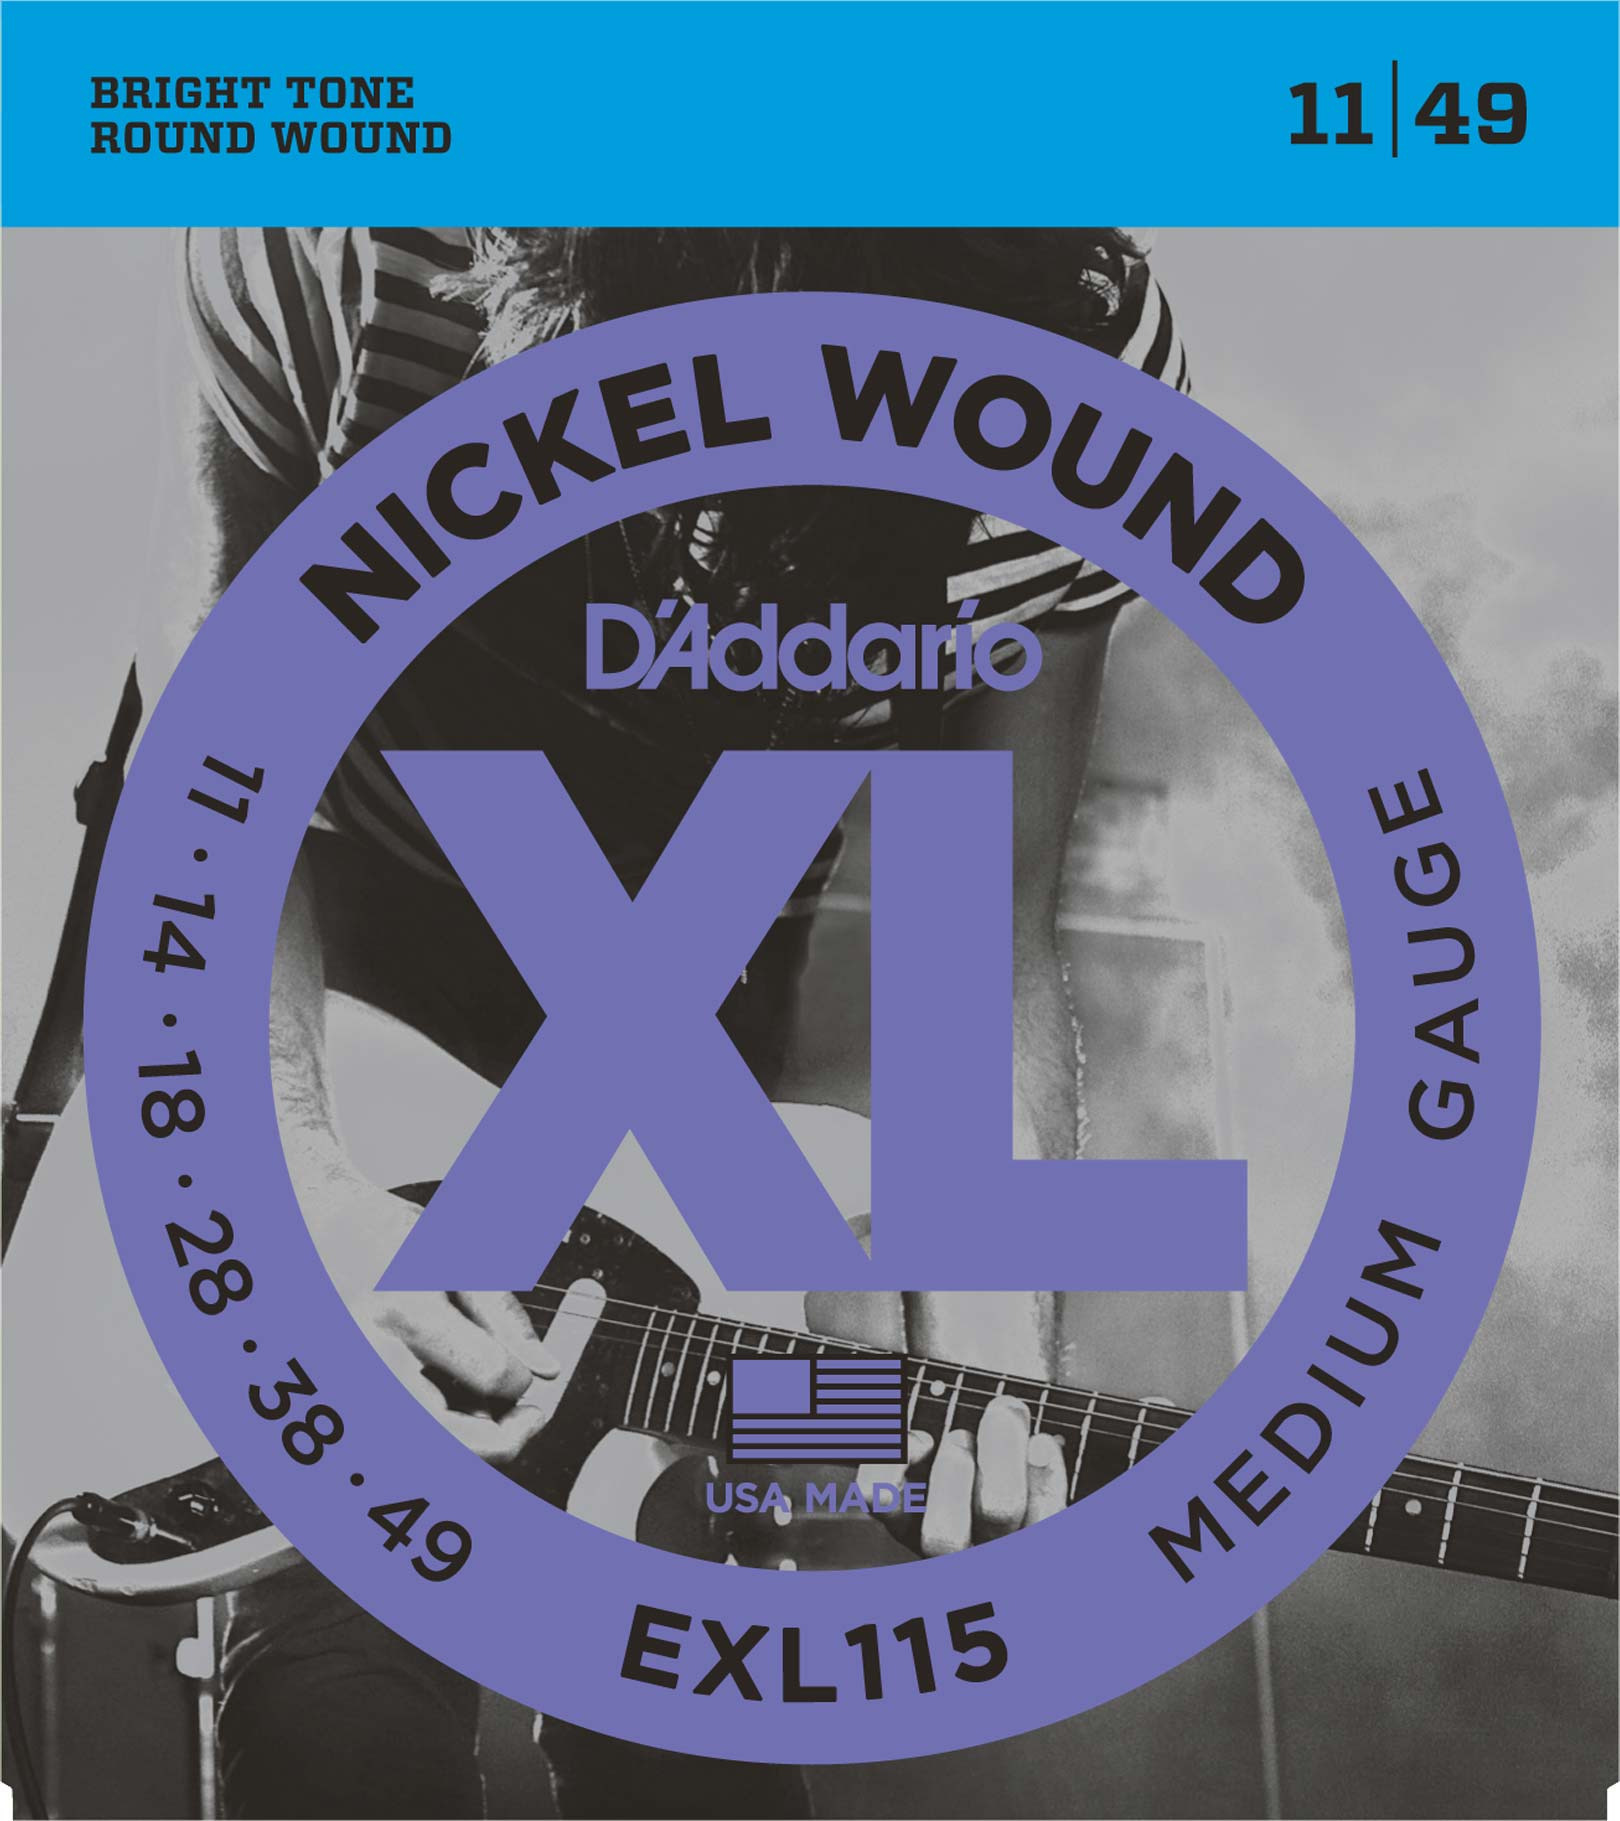 D'ADDARIO NICKEL WOUND ELECTRIC GUITAR STRINGS MEDIUM 11-49